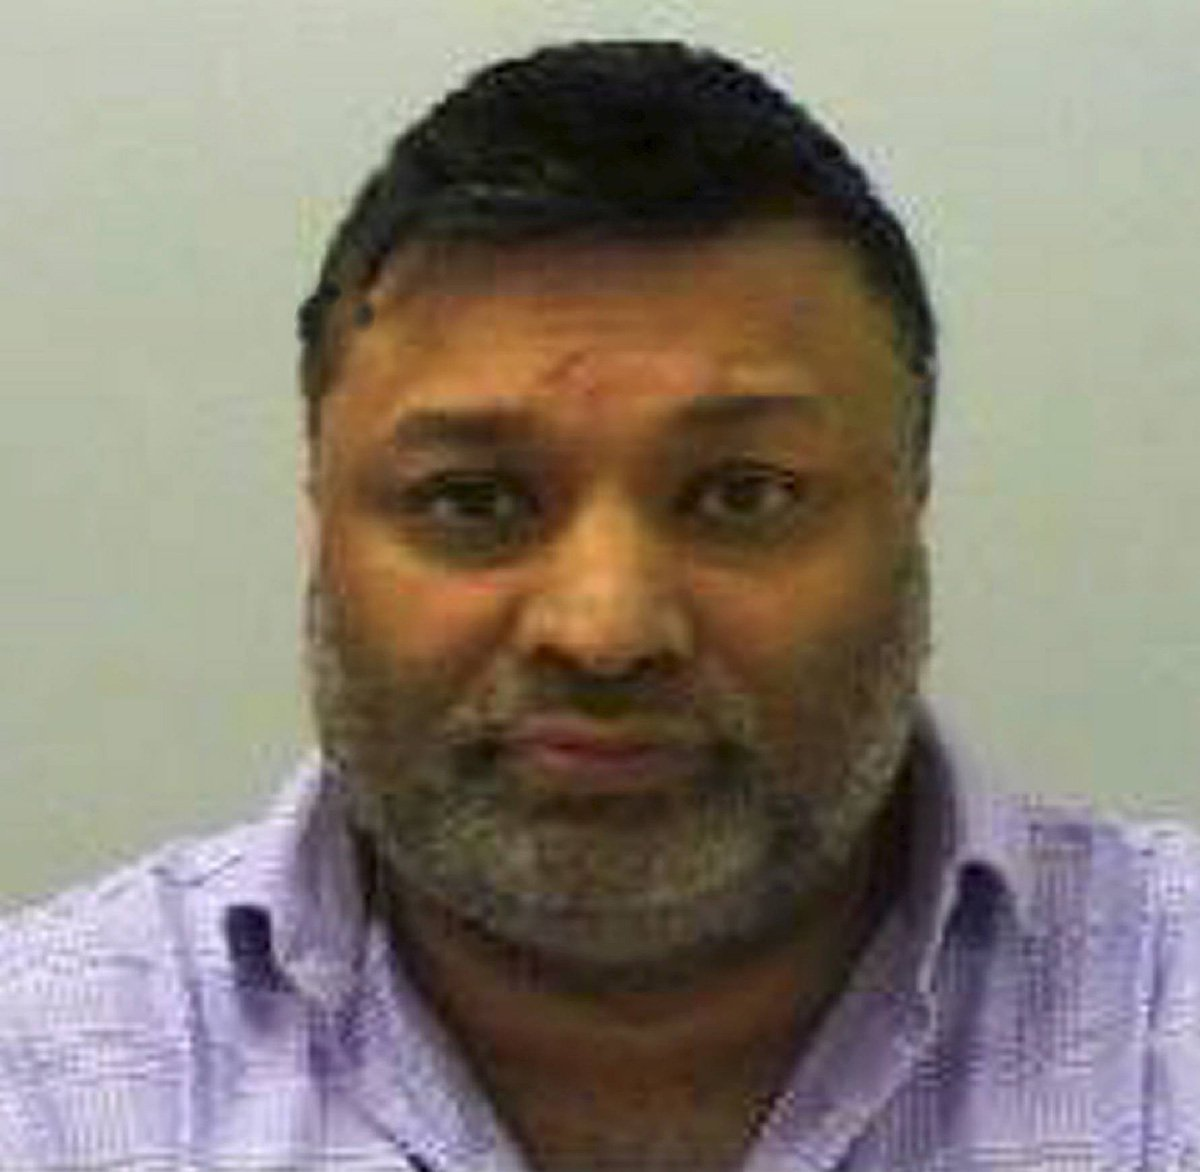 Dated: 09/11/2018 MARRIED DAD WHO POSED AS DOCTOR JAILED FOR SEX ATTACK ON SCHOOLGIRL Humaiun Khan, 45, from Hull has been been jailed for three years at Newcastle Crown Court, 16 years after he posed as a young doctor so that he could launch a sex attack on a schoolgirl. See copy North News